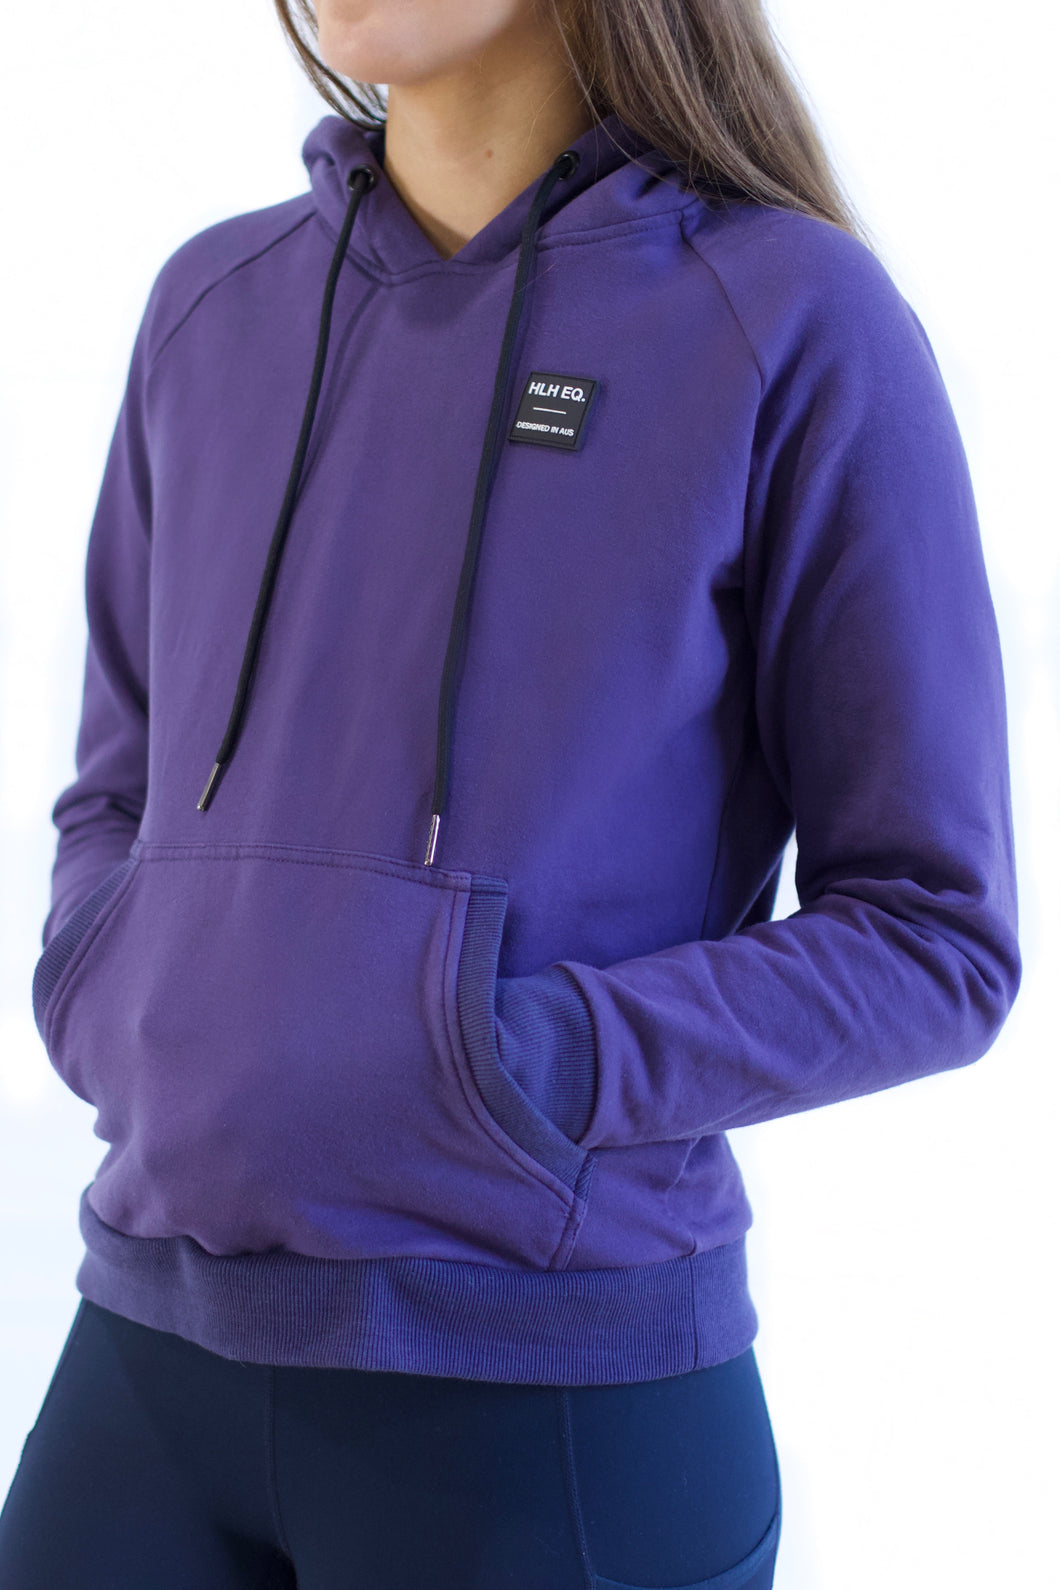 LIMITED EDITION hoodie in Blueberry